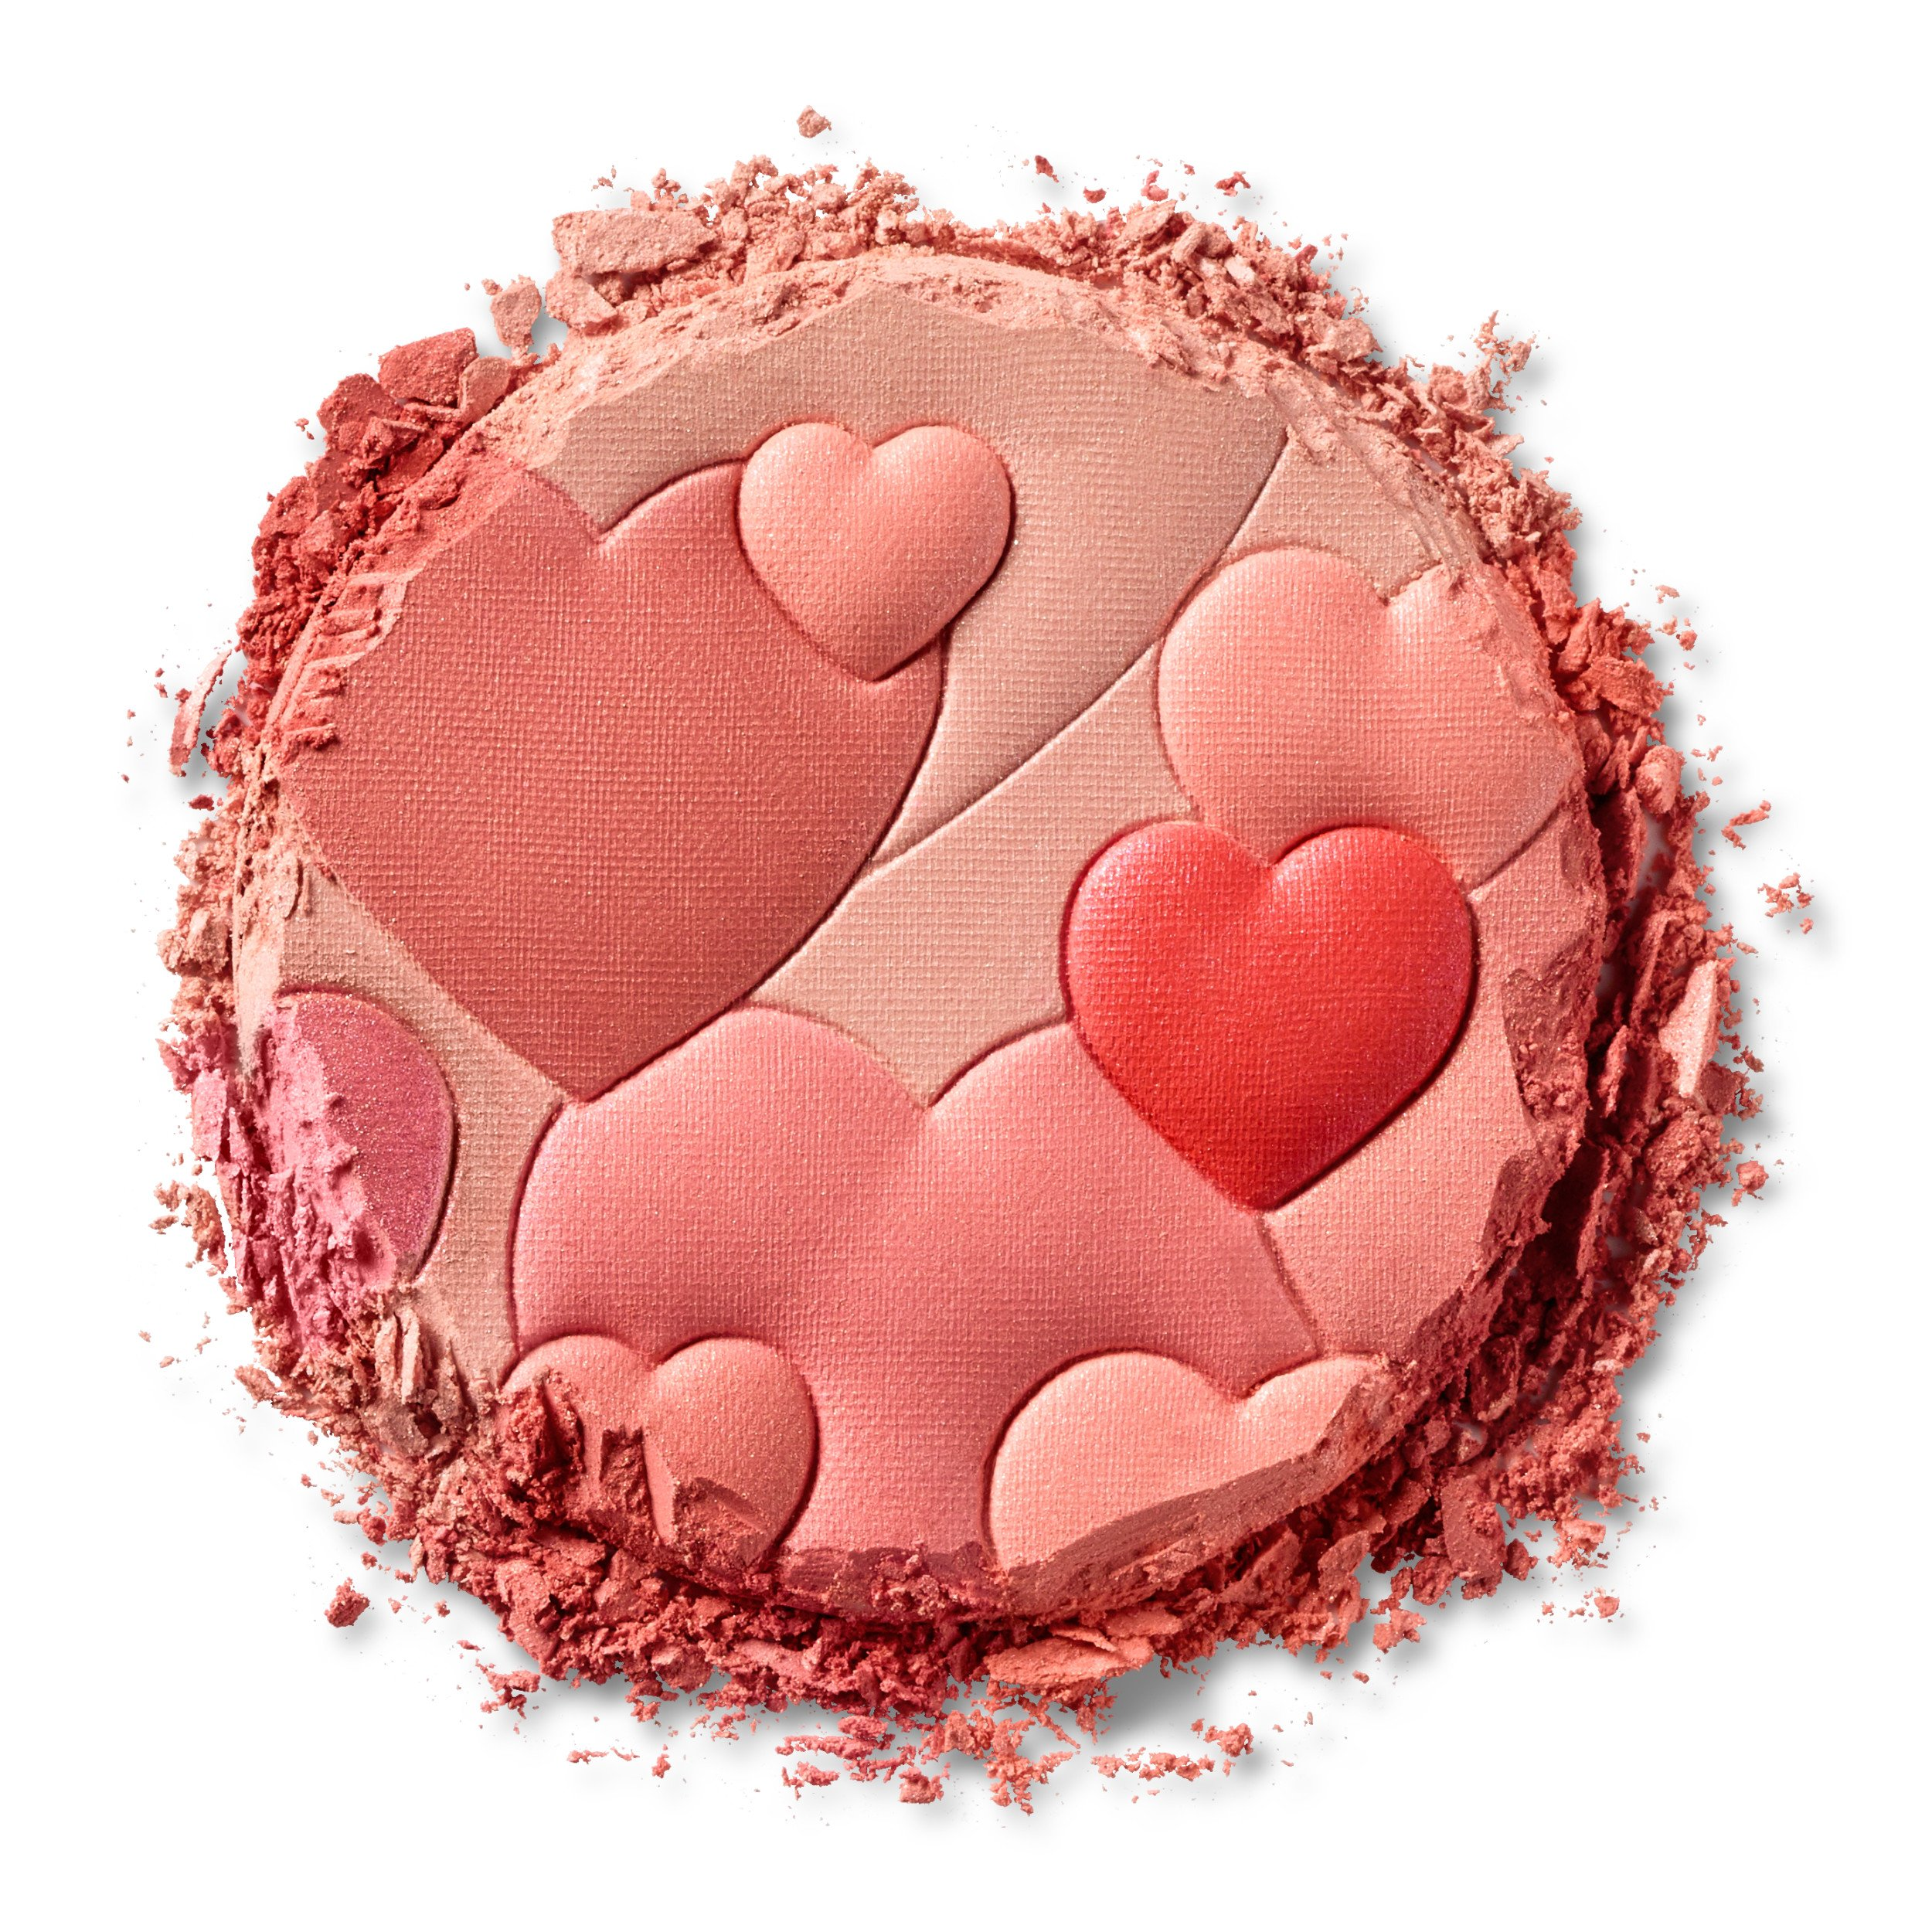 Physicians Formula Happy Booster Glow & Mood Boosting Blush, Warm, 0.24 Ounce by Physicians Formula (Image #1)